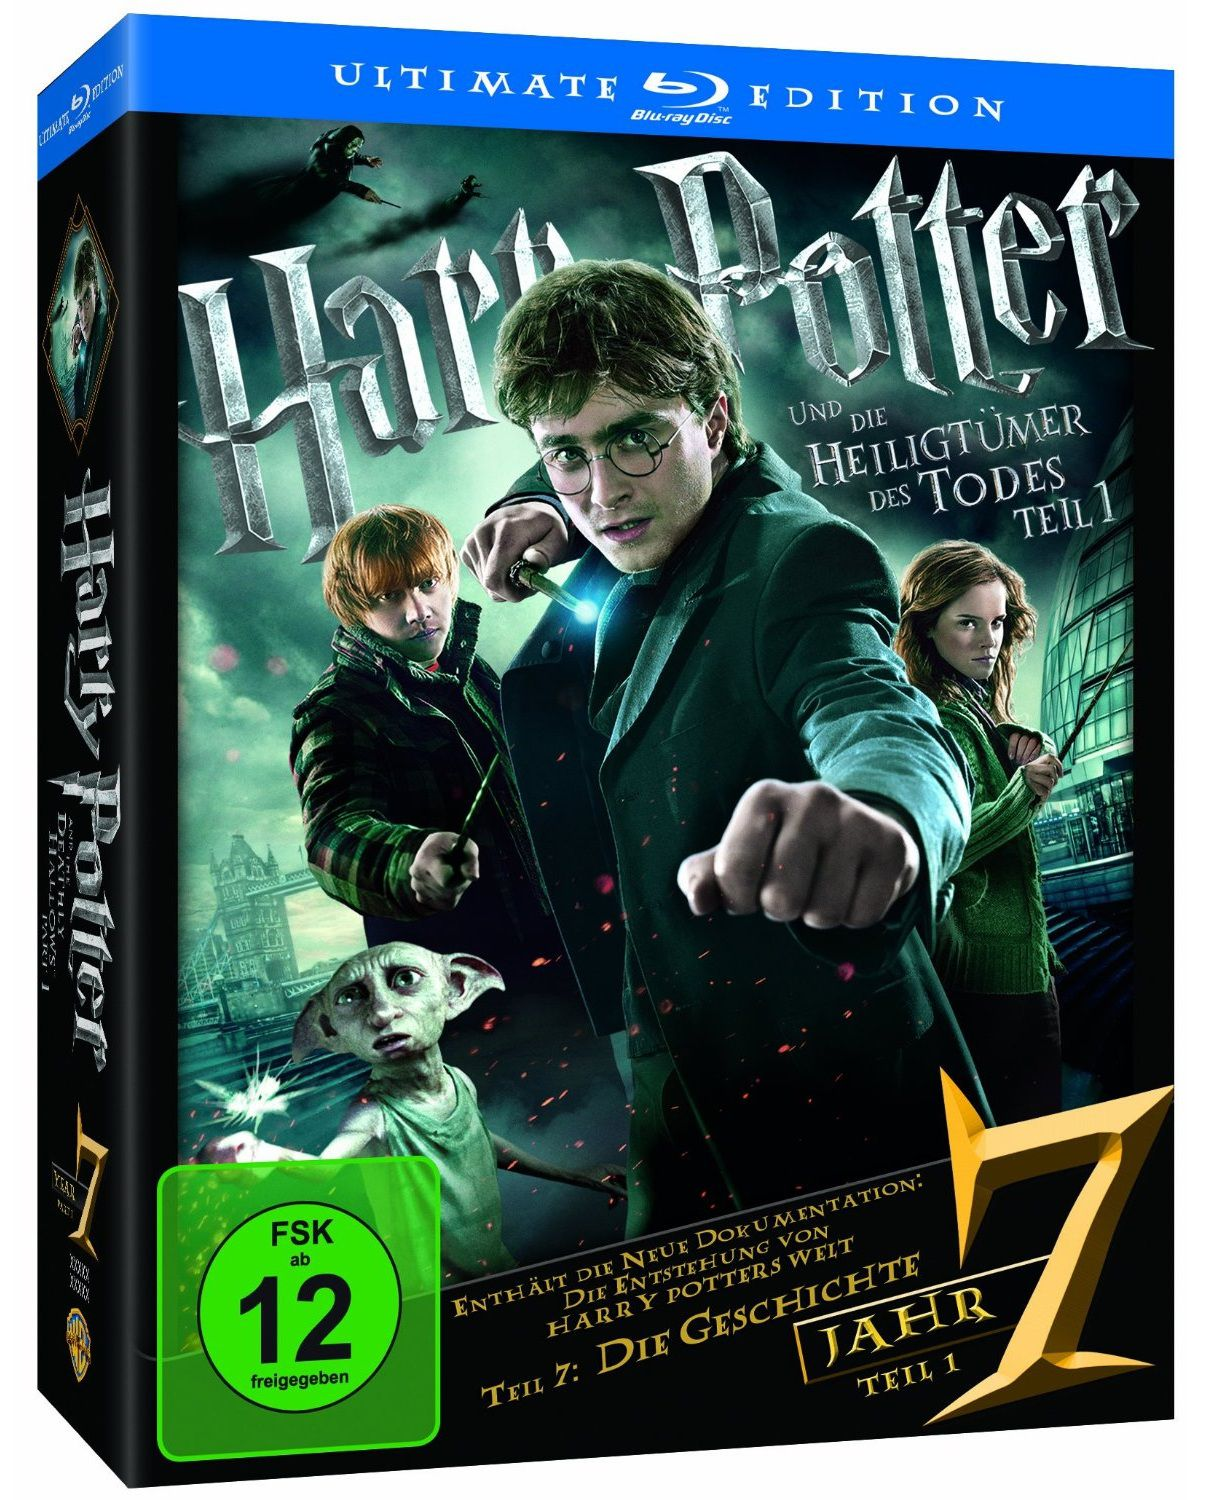 harry potter 7 et 8 en coffret dvd blu ray dition ultimate. Black Bedroom Furniture Sets. Home Design Ideas